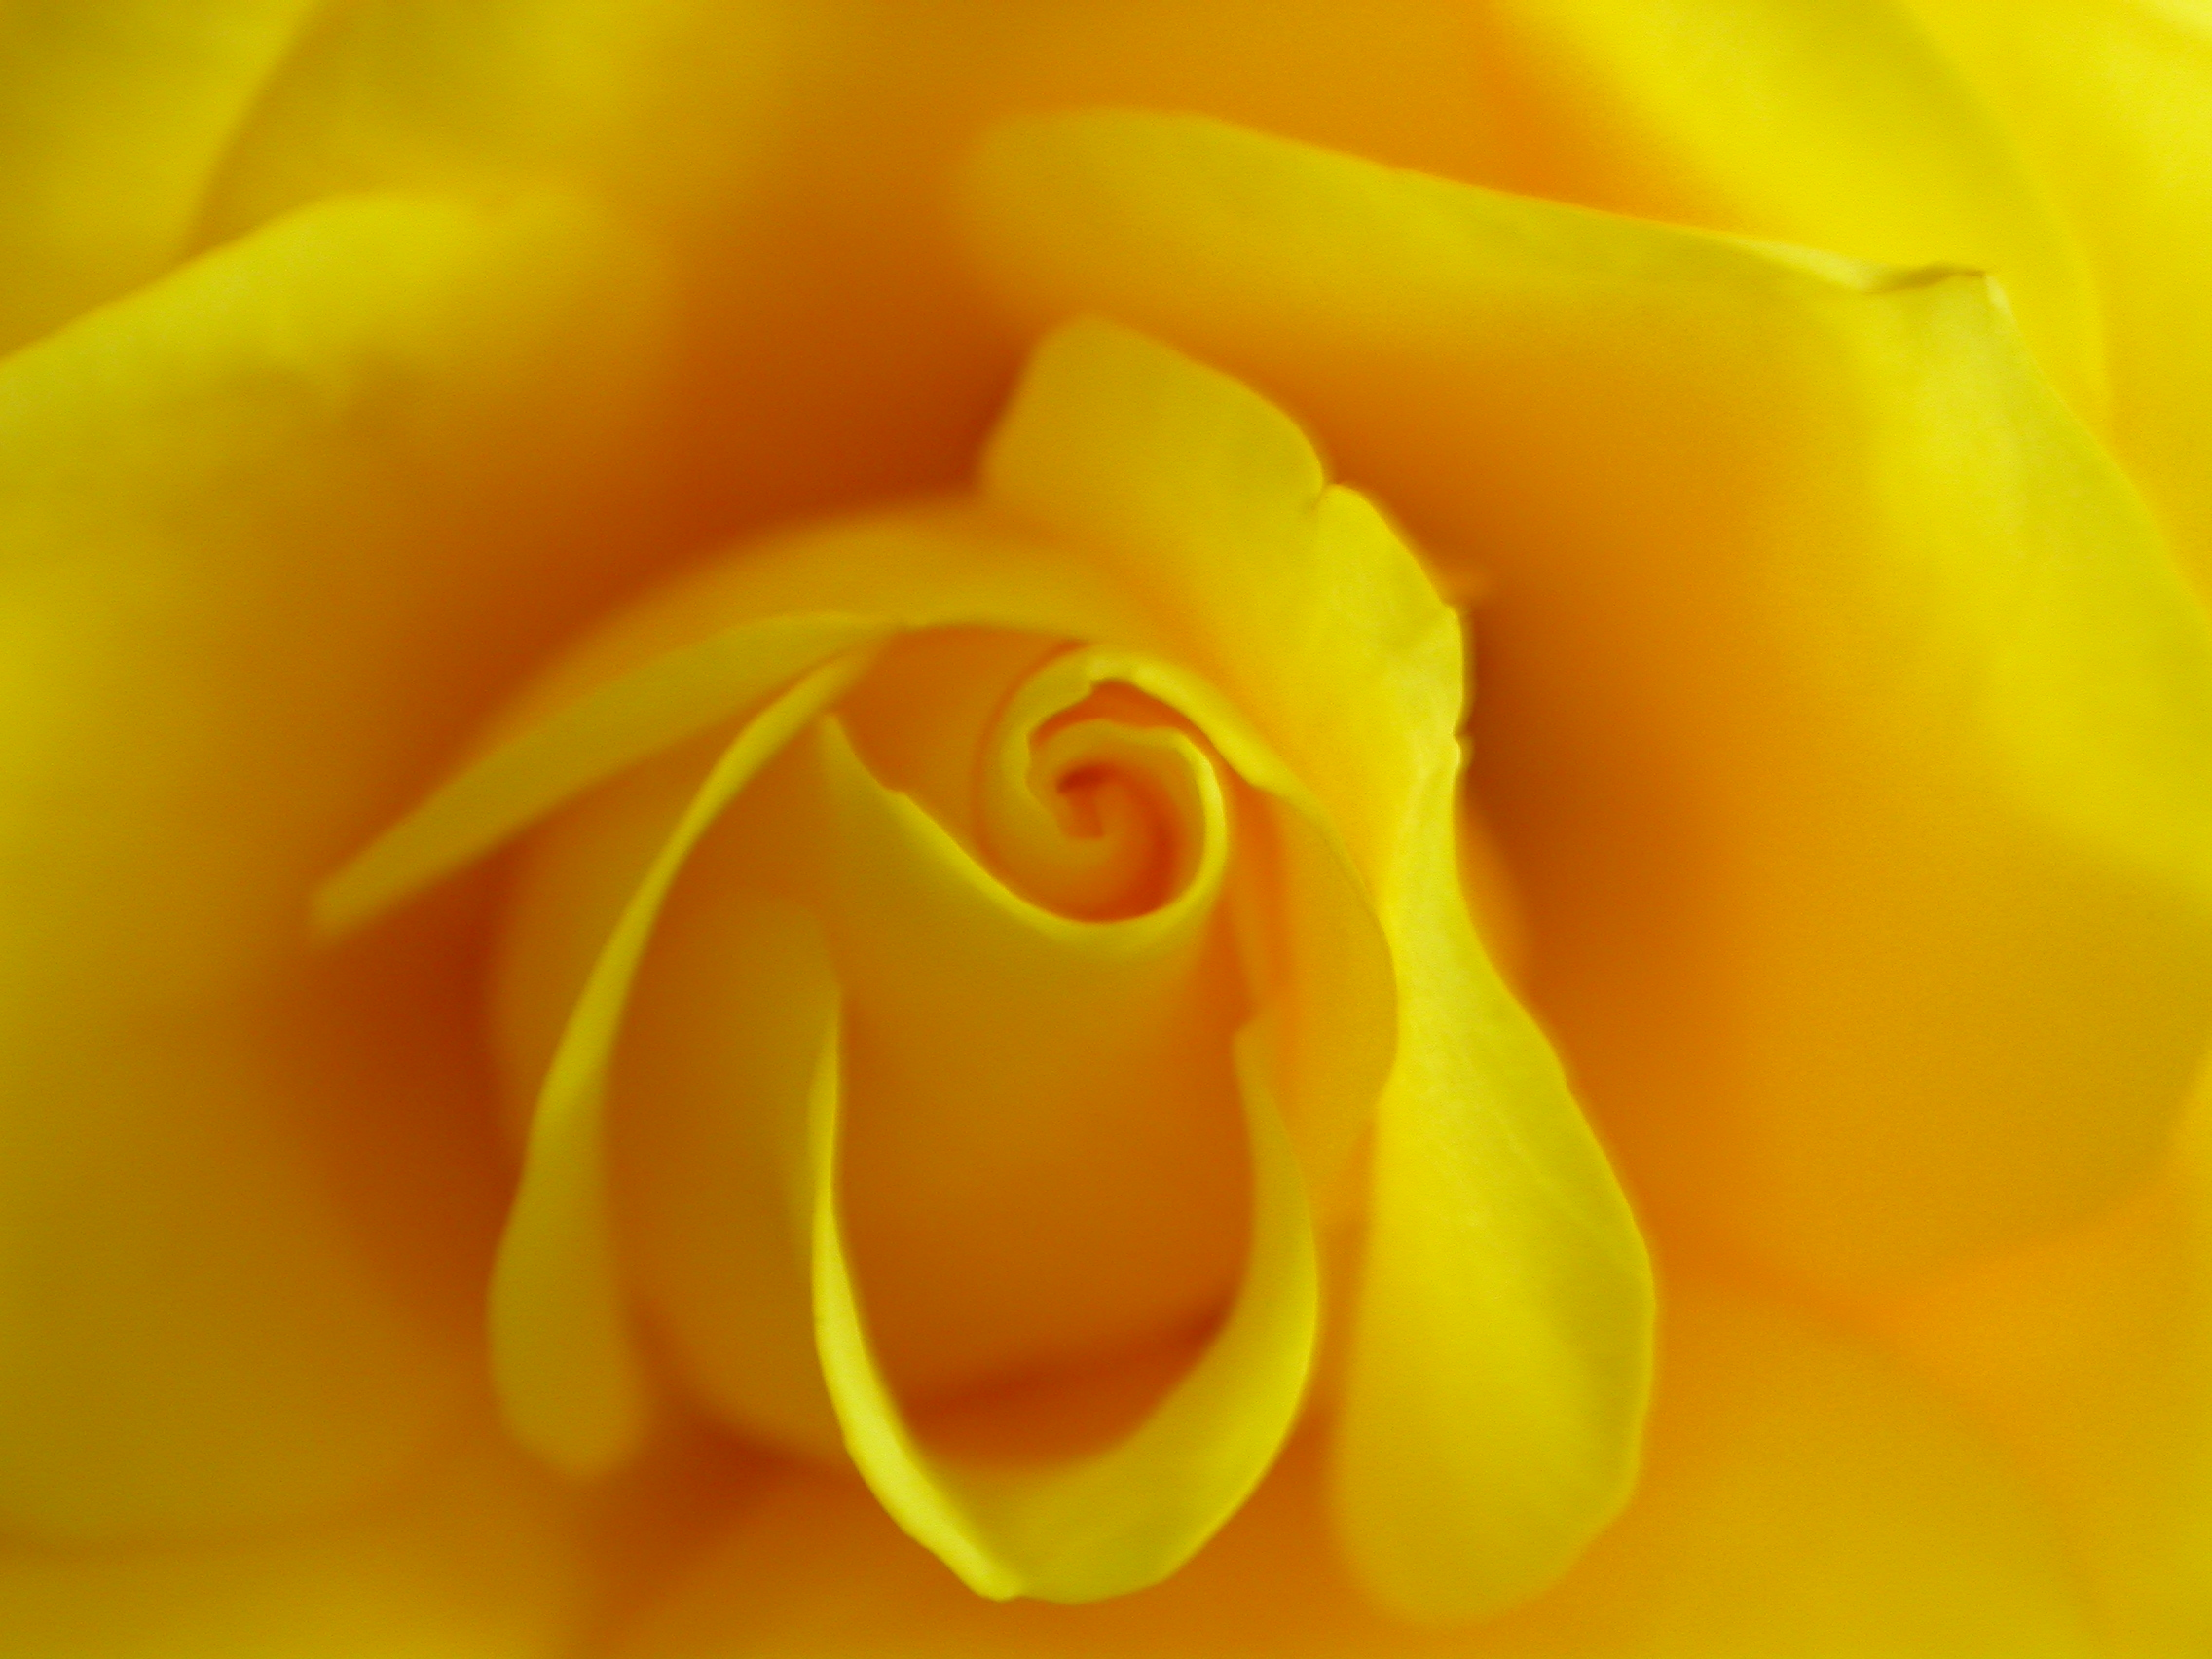 paul flower rose yellow of texas inner closeup warm romantic valentine